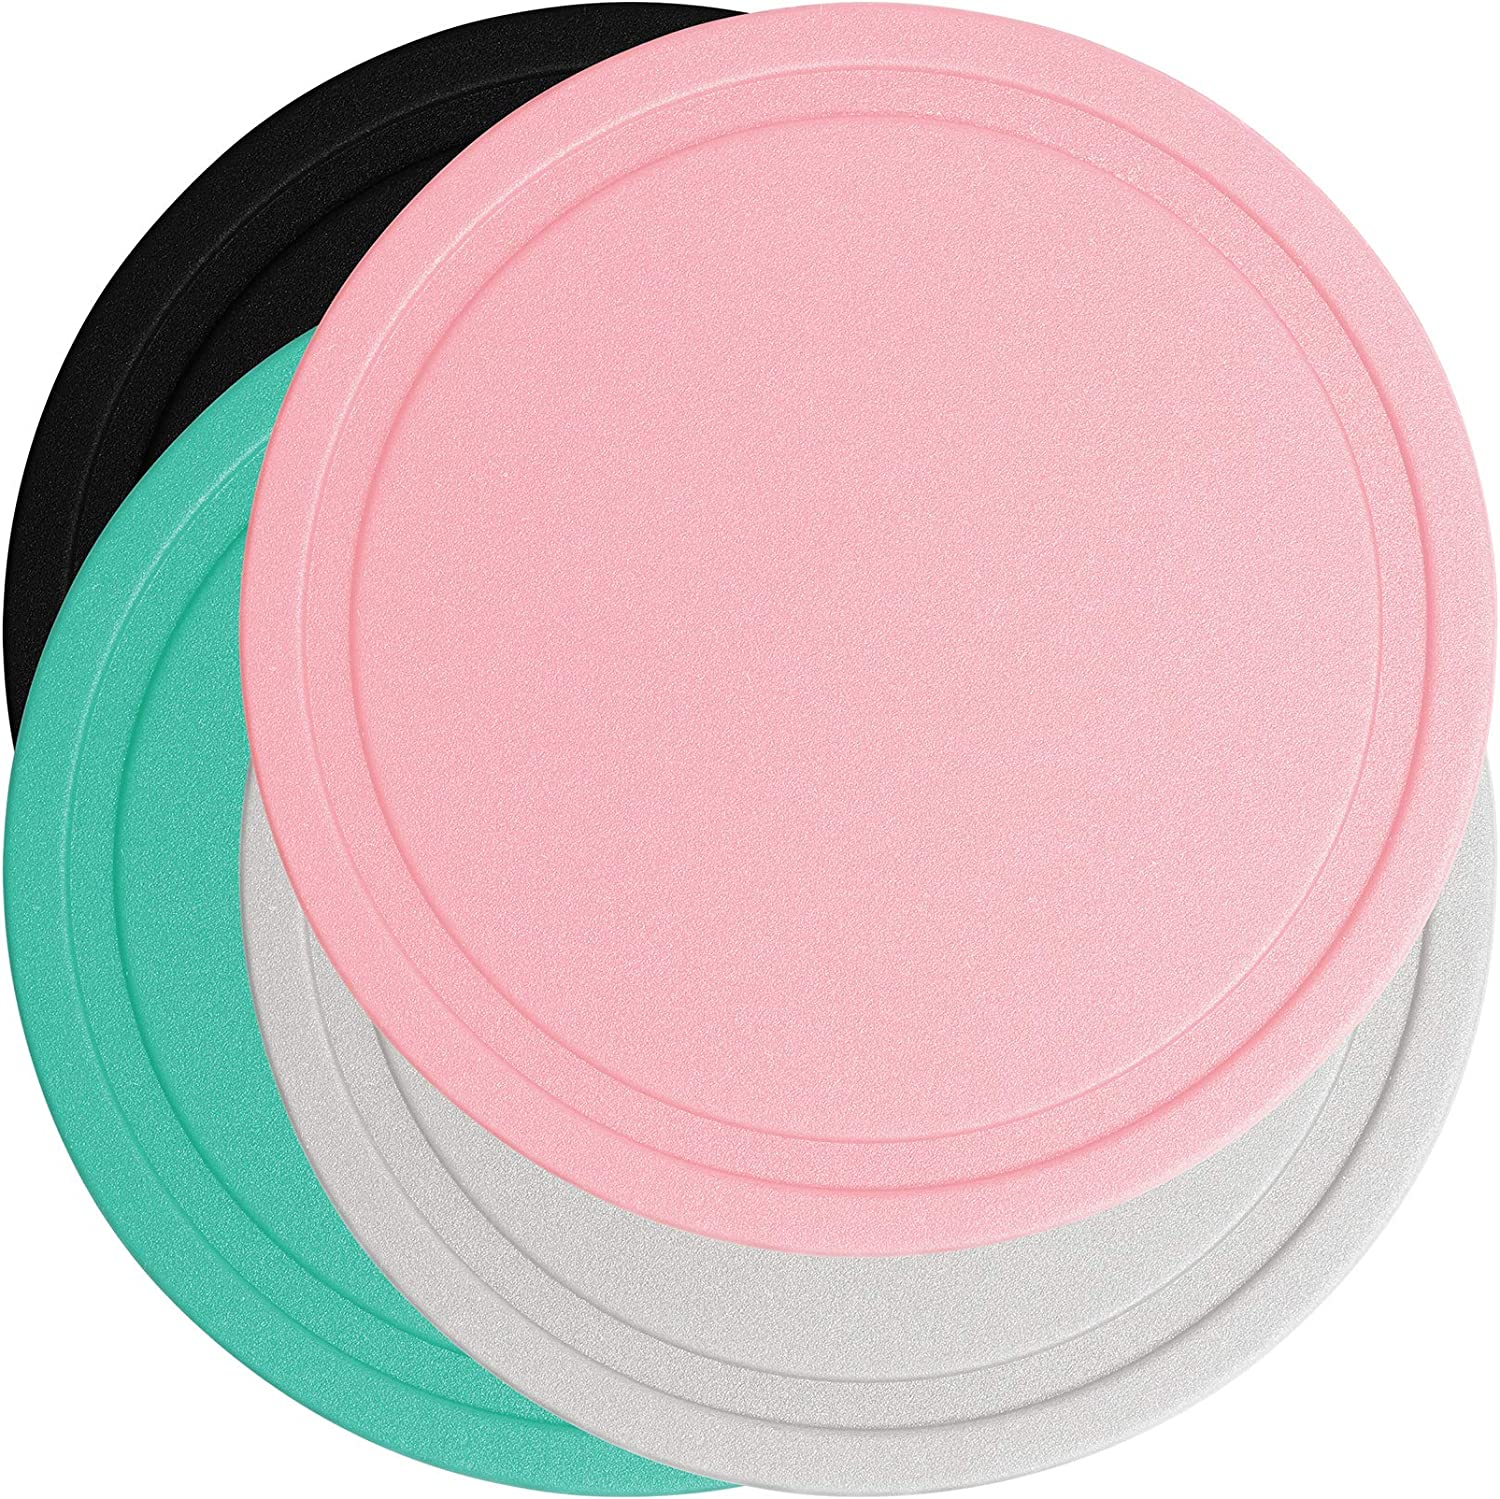 TOPHOME 4 Sets Silicone Coasters Drink Coasters Heat Resistant Soft Coaster Protect Furniture From Water Marks or Damage 4.3 Inch Size (Black,Pink,Grey,Blue)